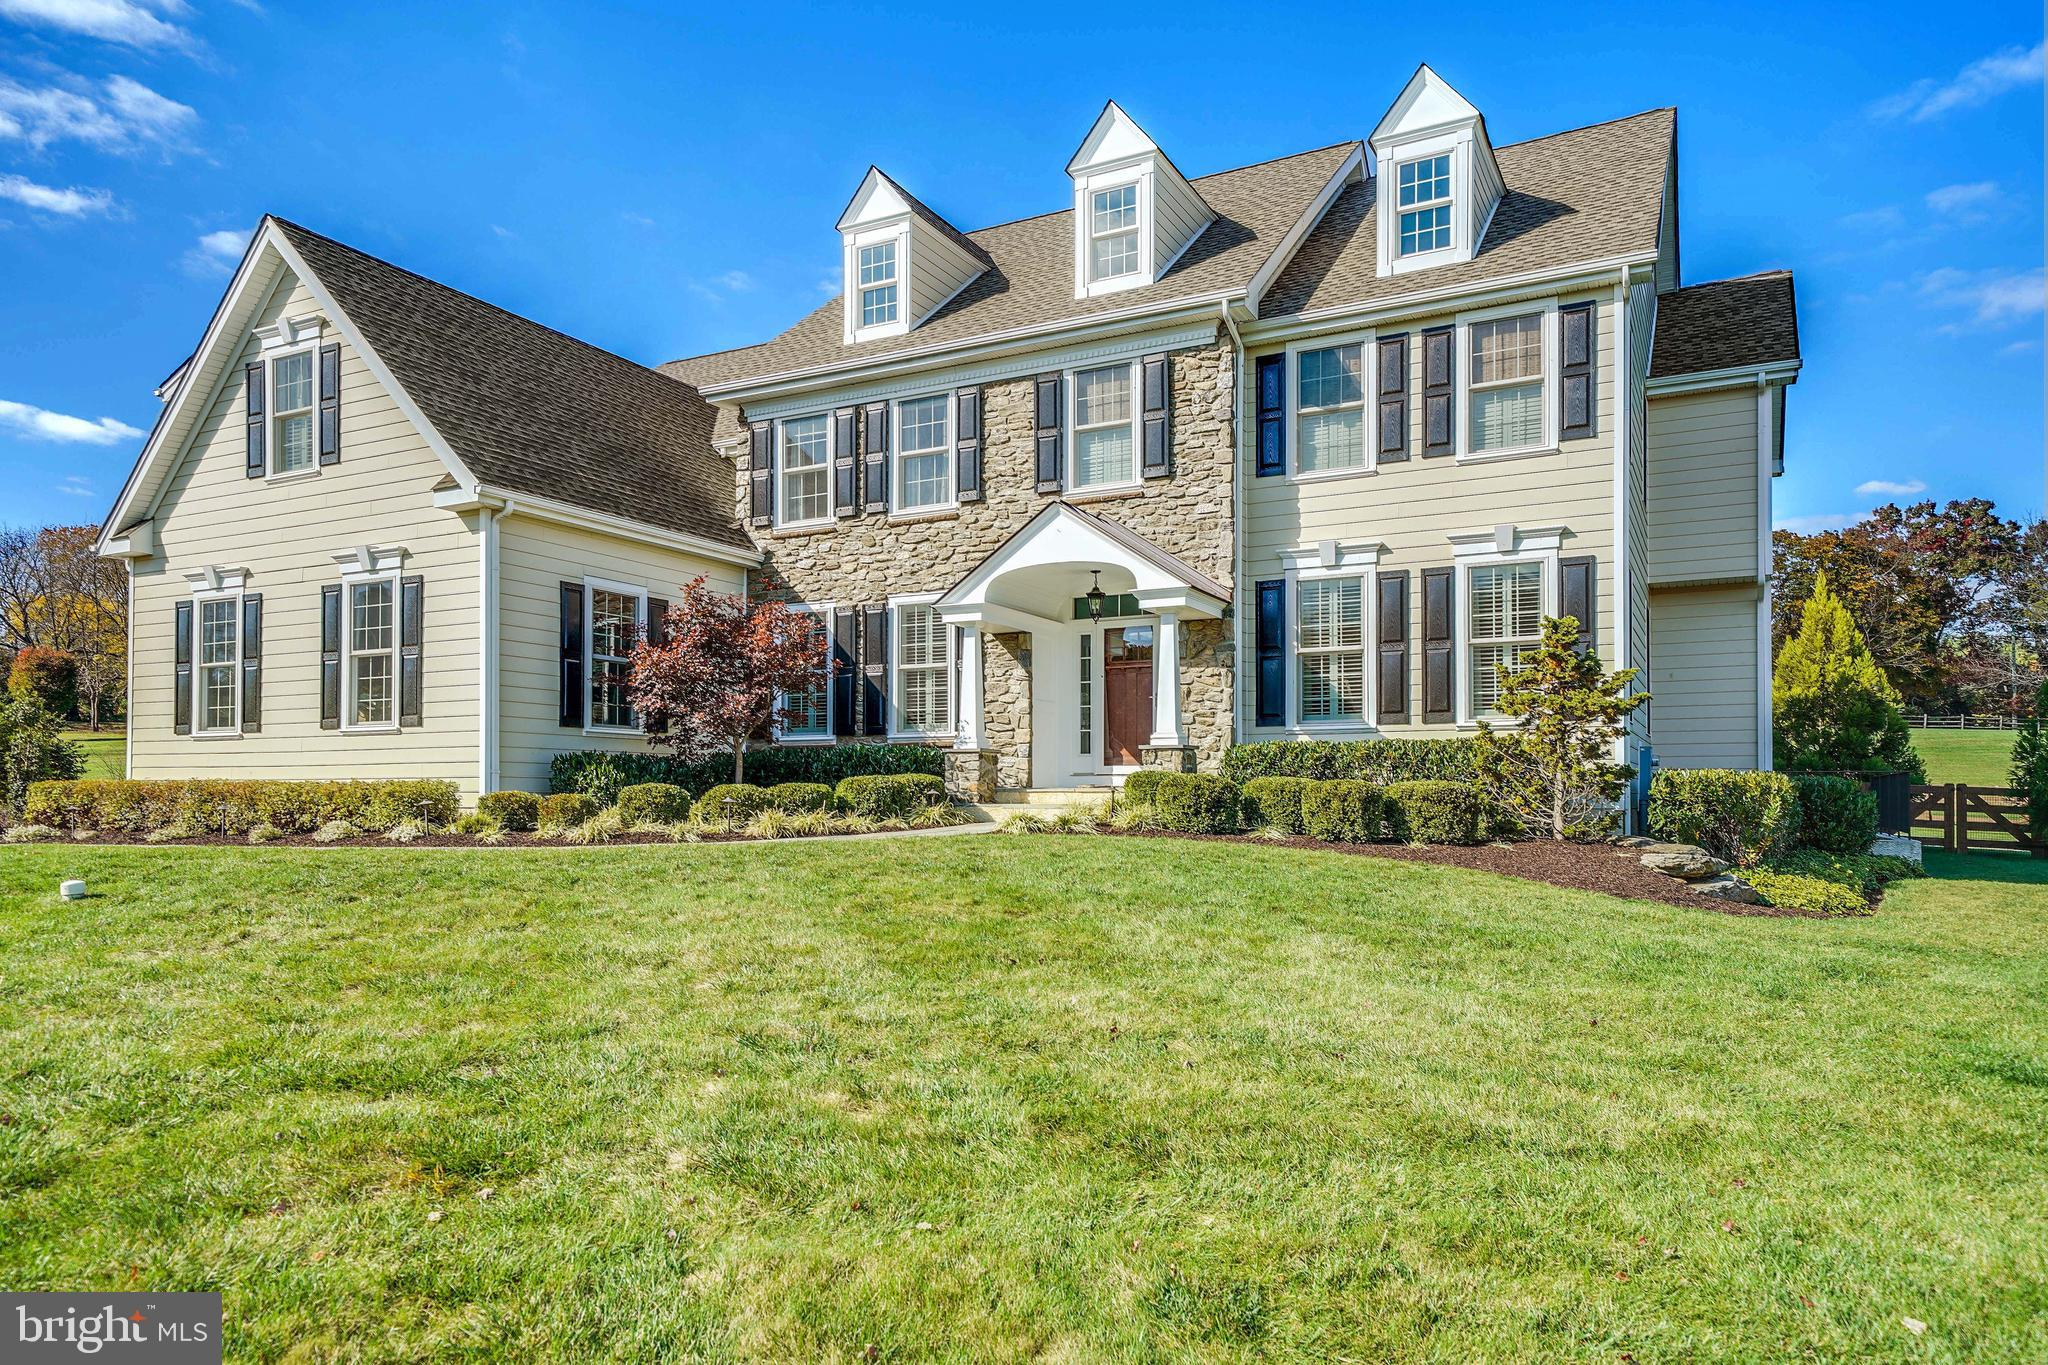 315 SPRING MEADOW DRIVE, WEST CHESTER, PA 19382